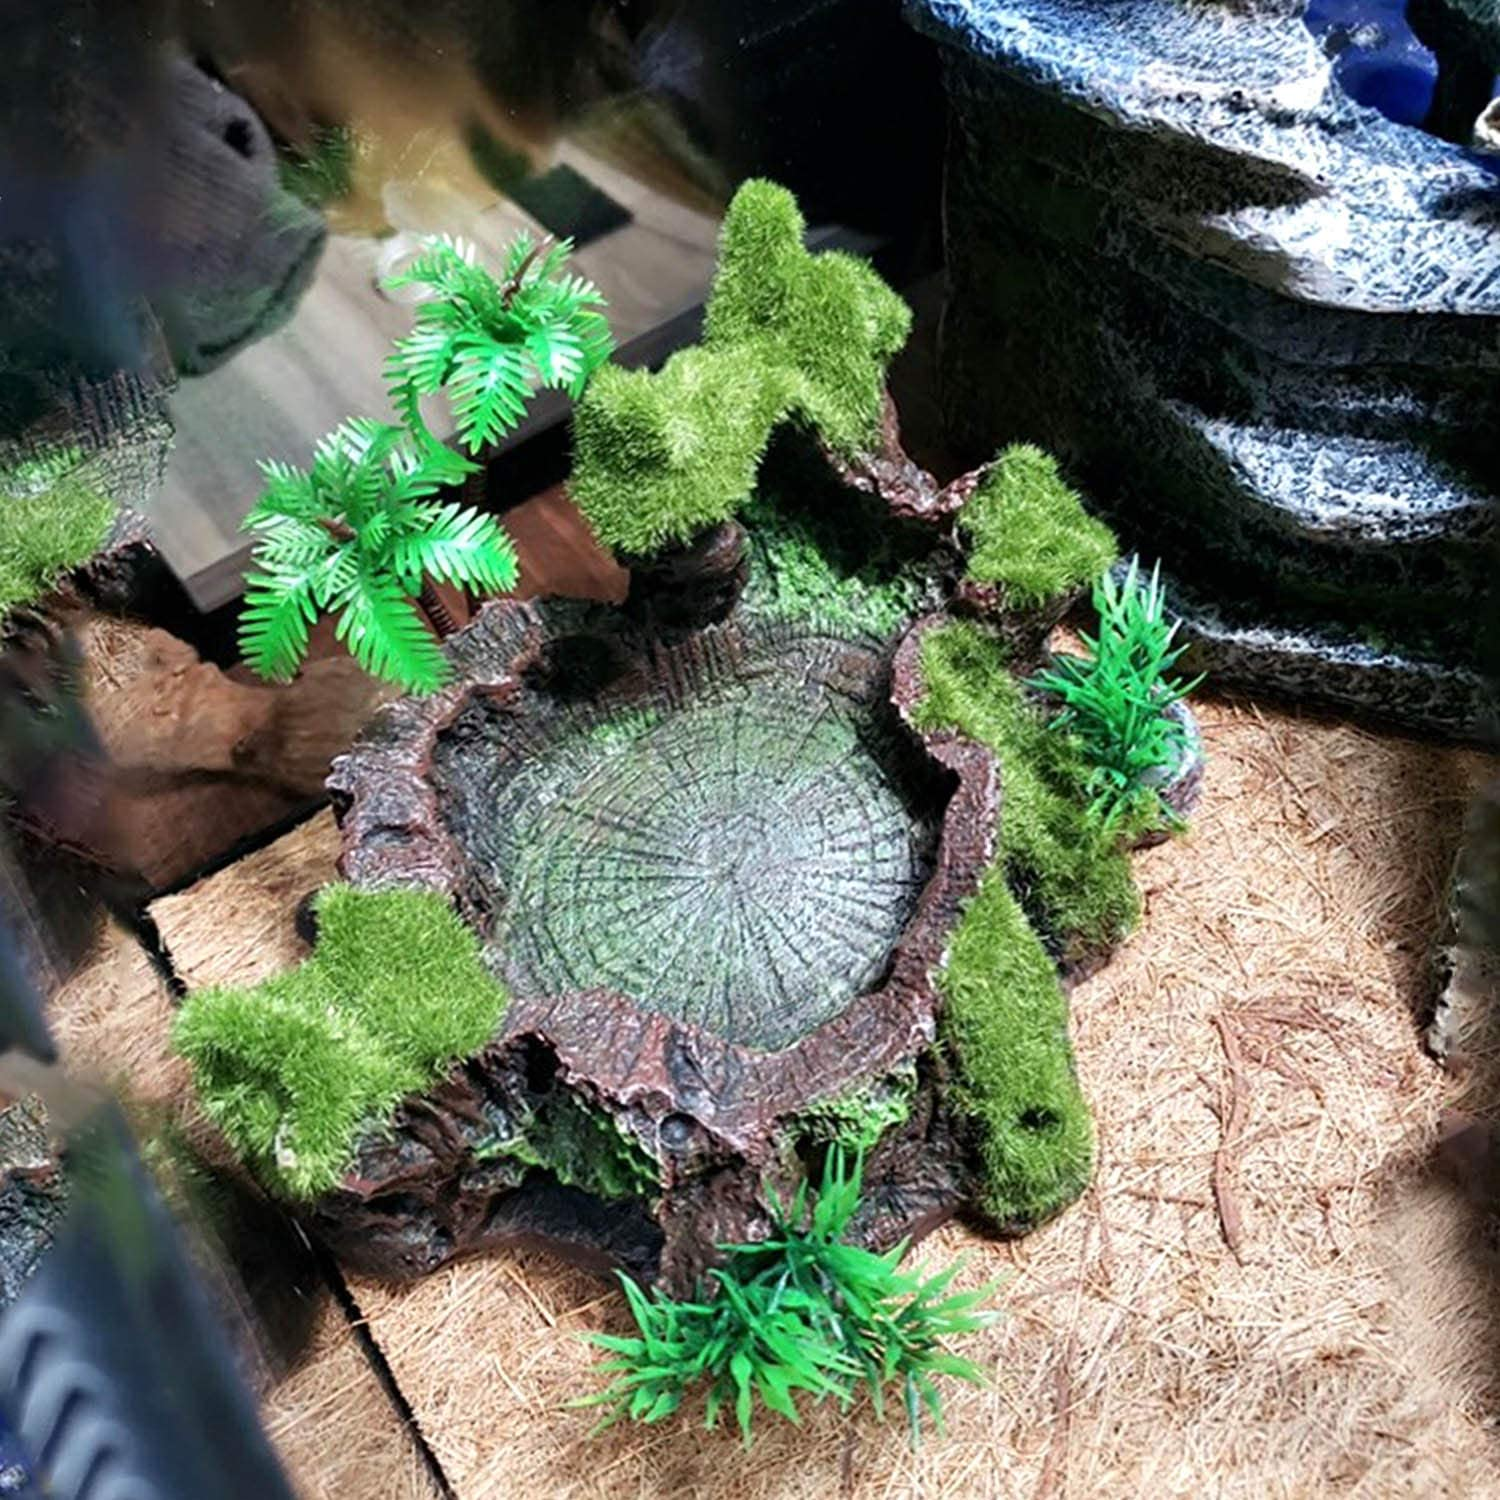 Resin Reptile Feeder, Artificial Tree Trunk Decoration Animal Food Water Bowl, Anti-Escape Reptile Feeder, for Lizard, Gecko, Water Frog, Other Reptile